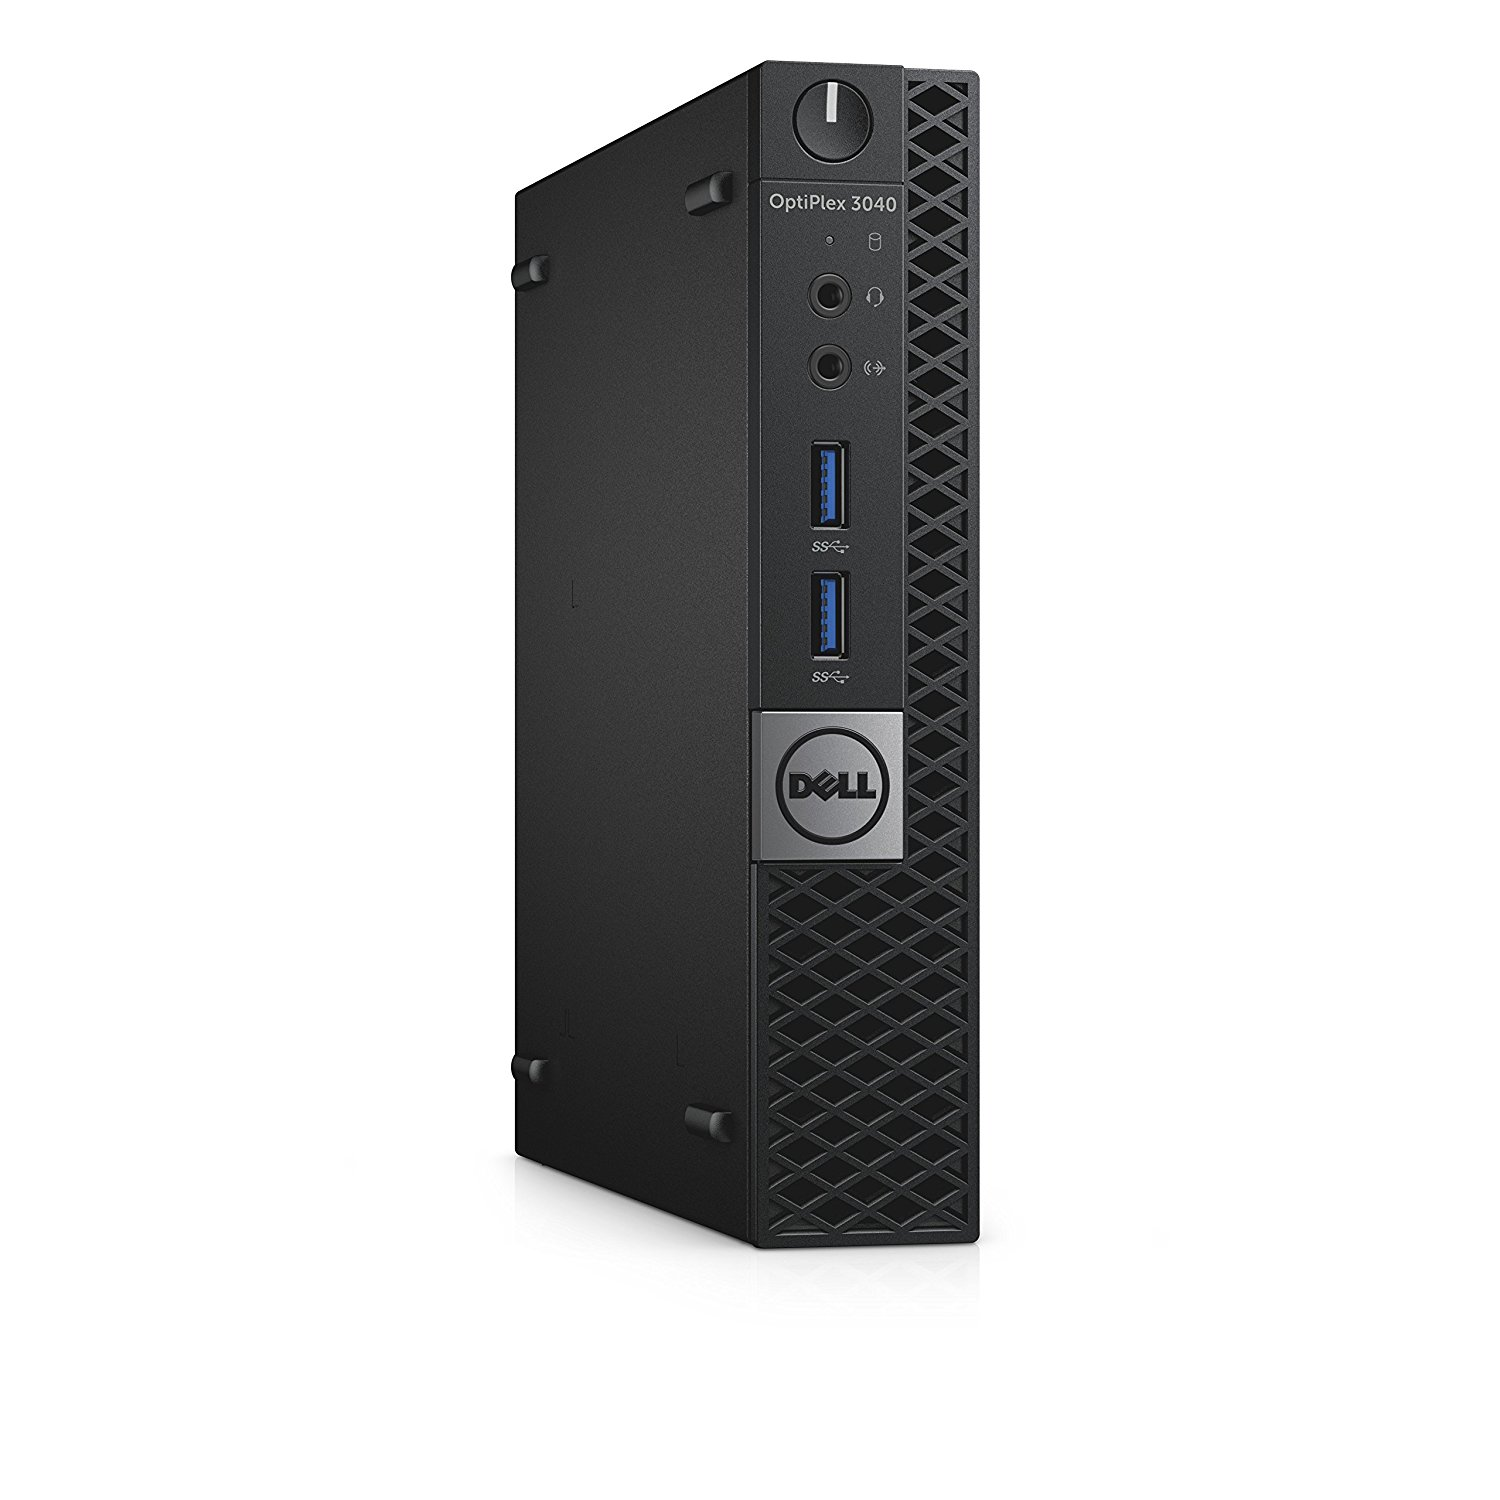 DELL OPTIPLEX 3040 MFF-70085482 - I5(6500T)/ 4G/ 500GB/ VGA Intel 530/ No DVD/ Win10 Pro